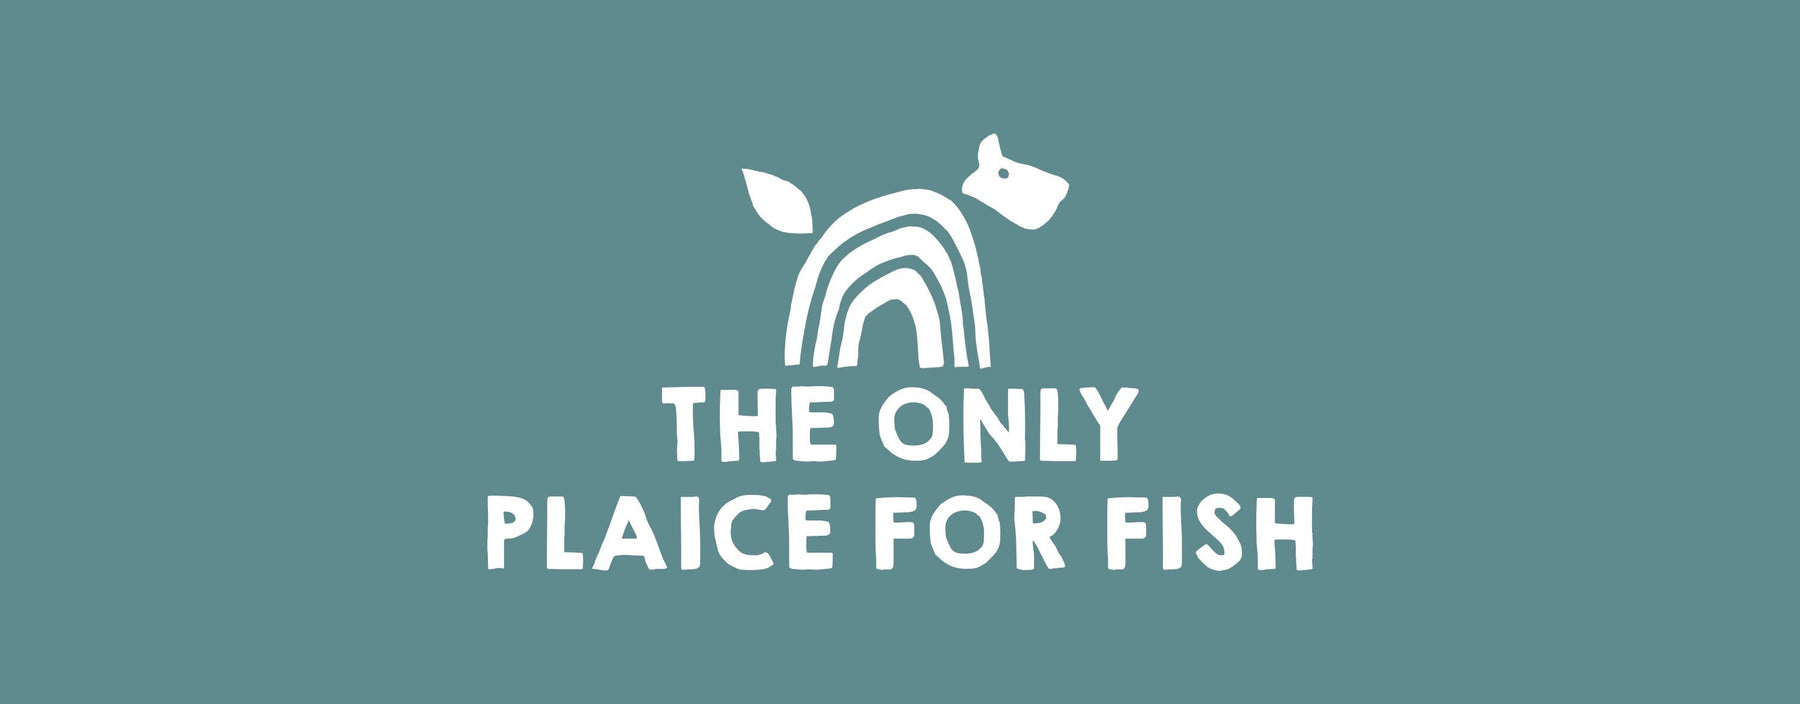 The Only Plaice for Fish